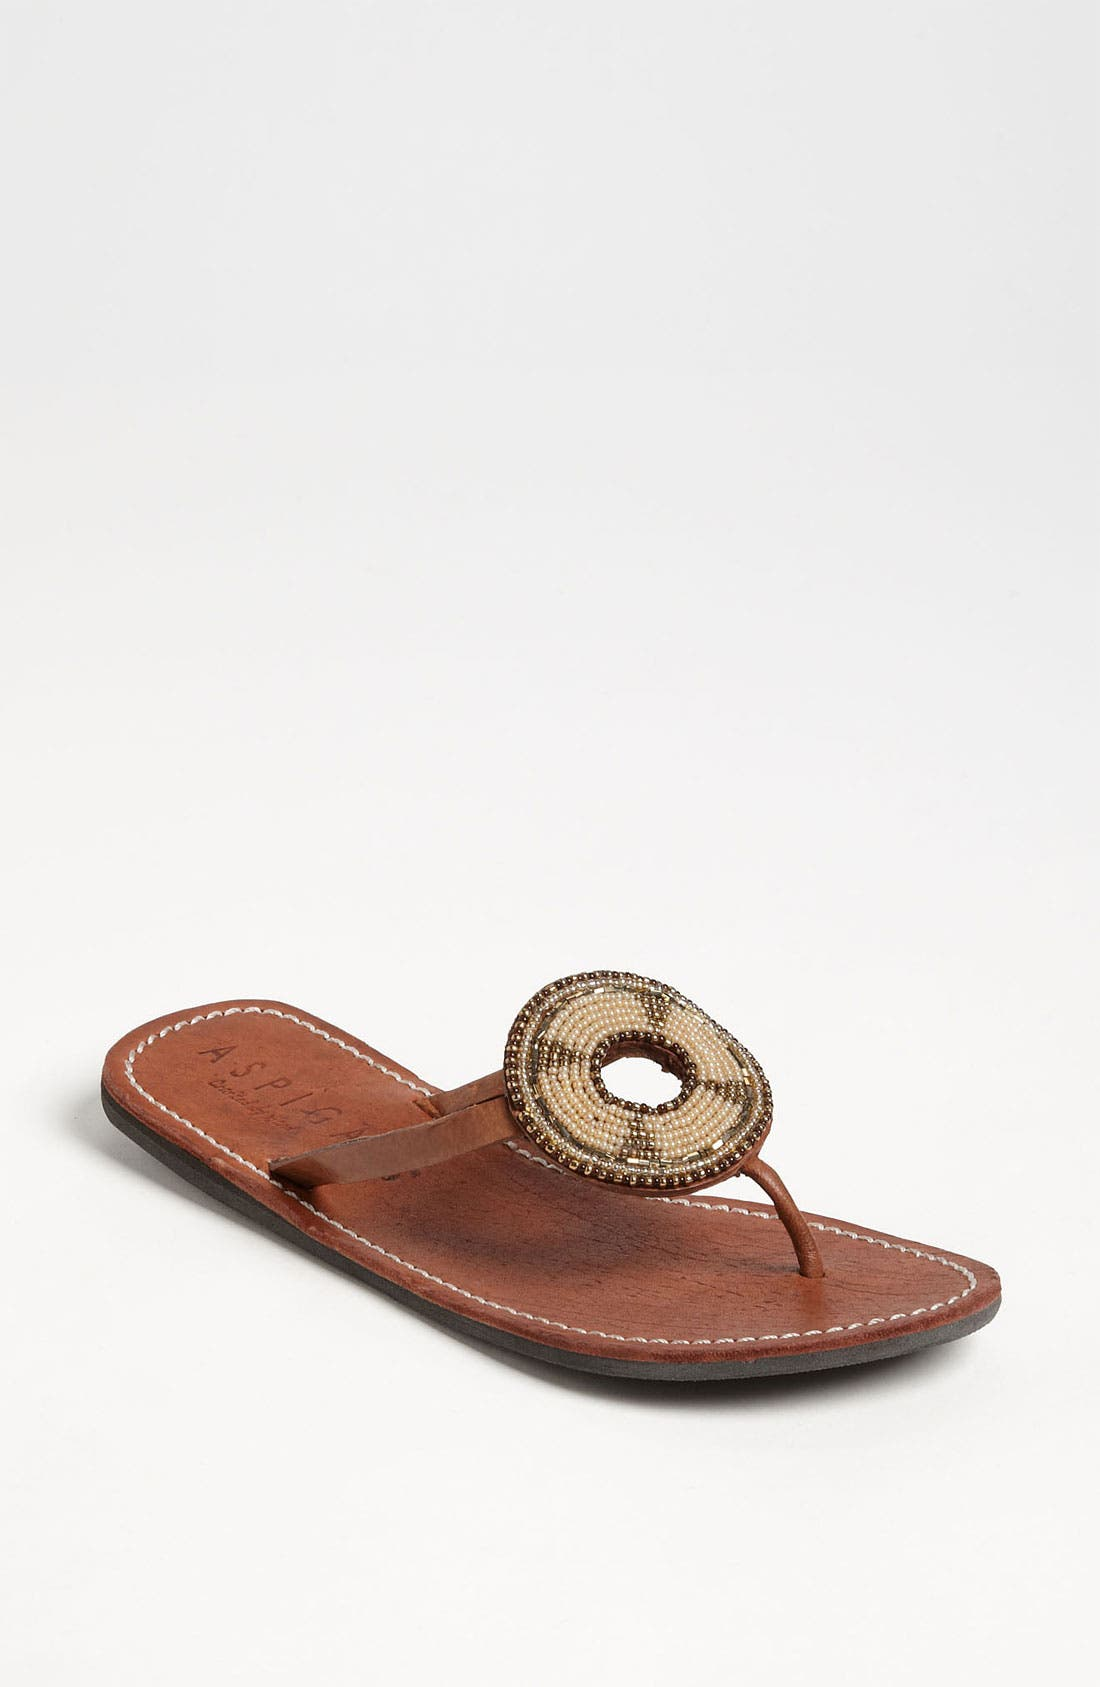 Alternate Image 1 Selected - Aspiga 'Masai Disc' Sandal